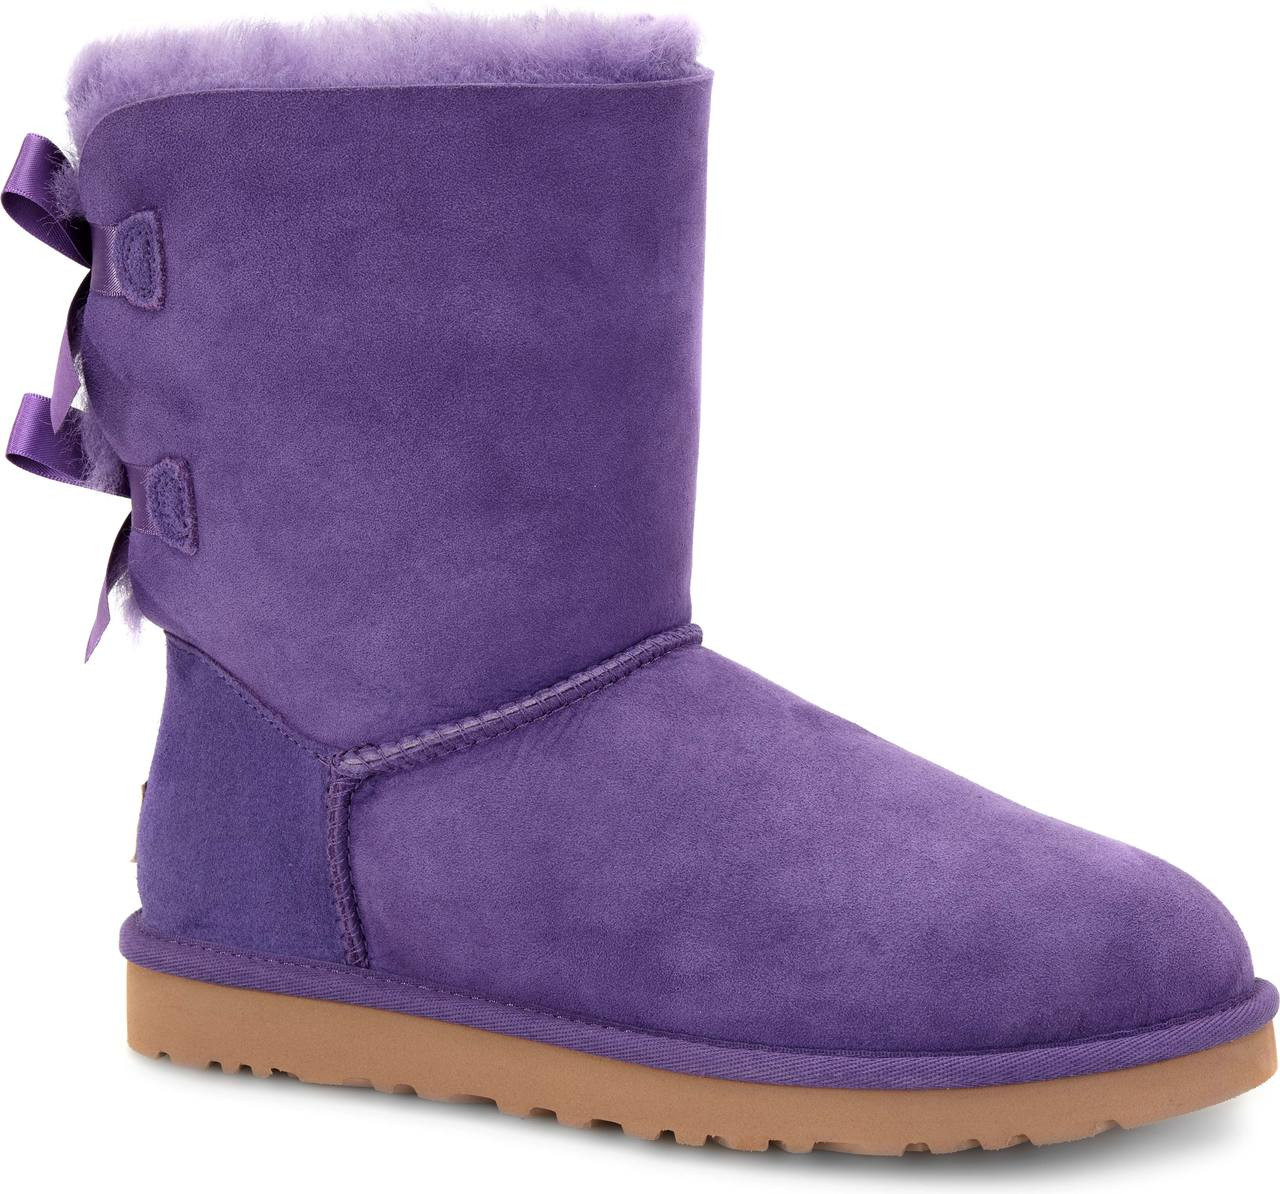 Free shipping BOTH ways on clearance uggs women boots, from our vast selection of styles. Fast delivery, and 24/7/ real-person service with a smile. Click or call